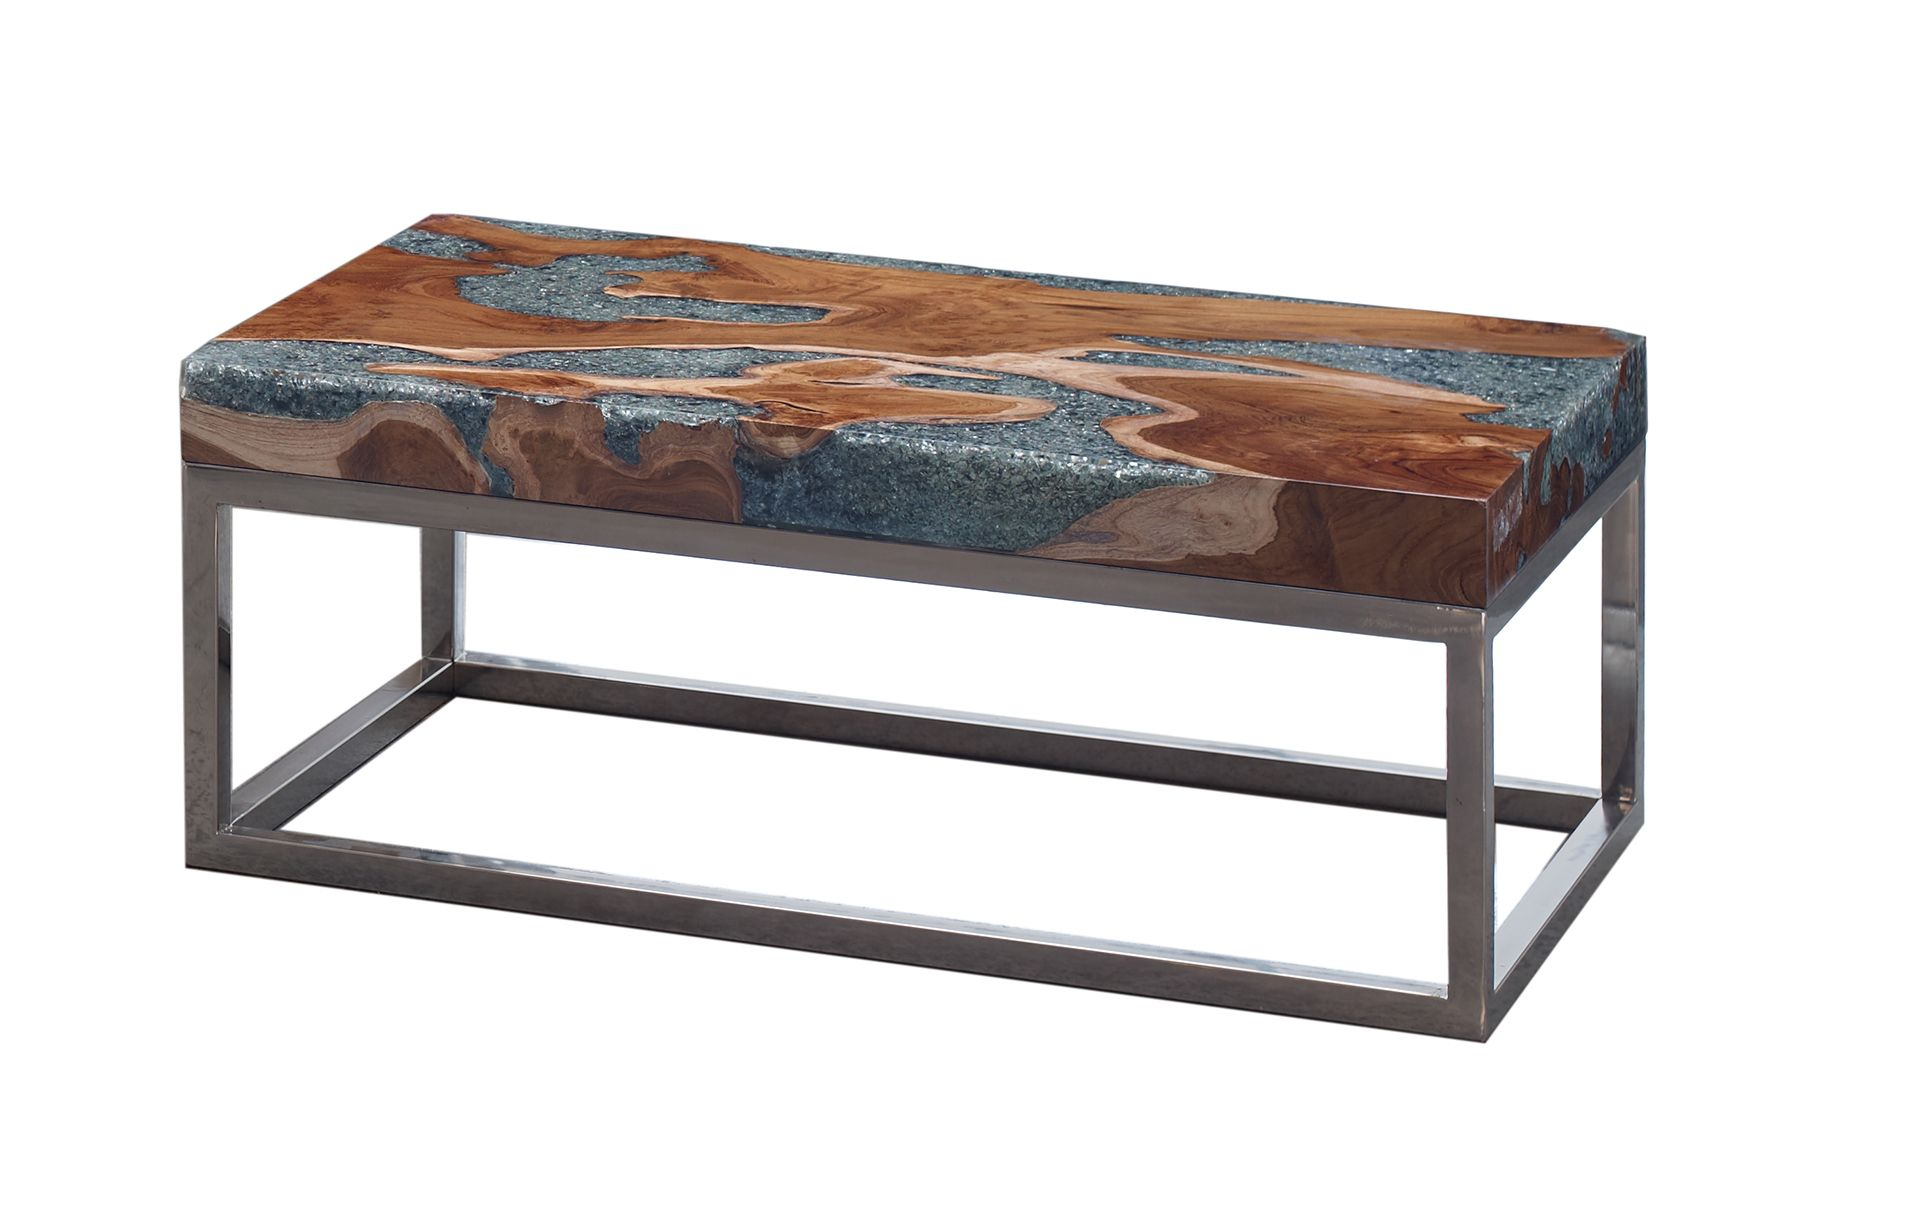 Phillips Collection Glitz Coffee Table Made Of Resin And Wood Showroom Ihfc C202 Hpmkt